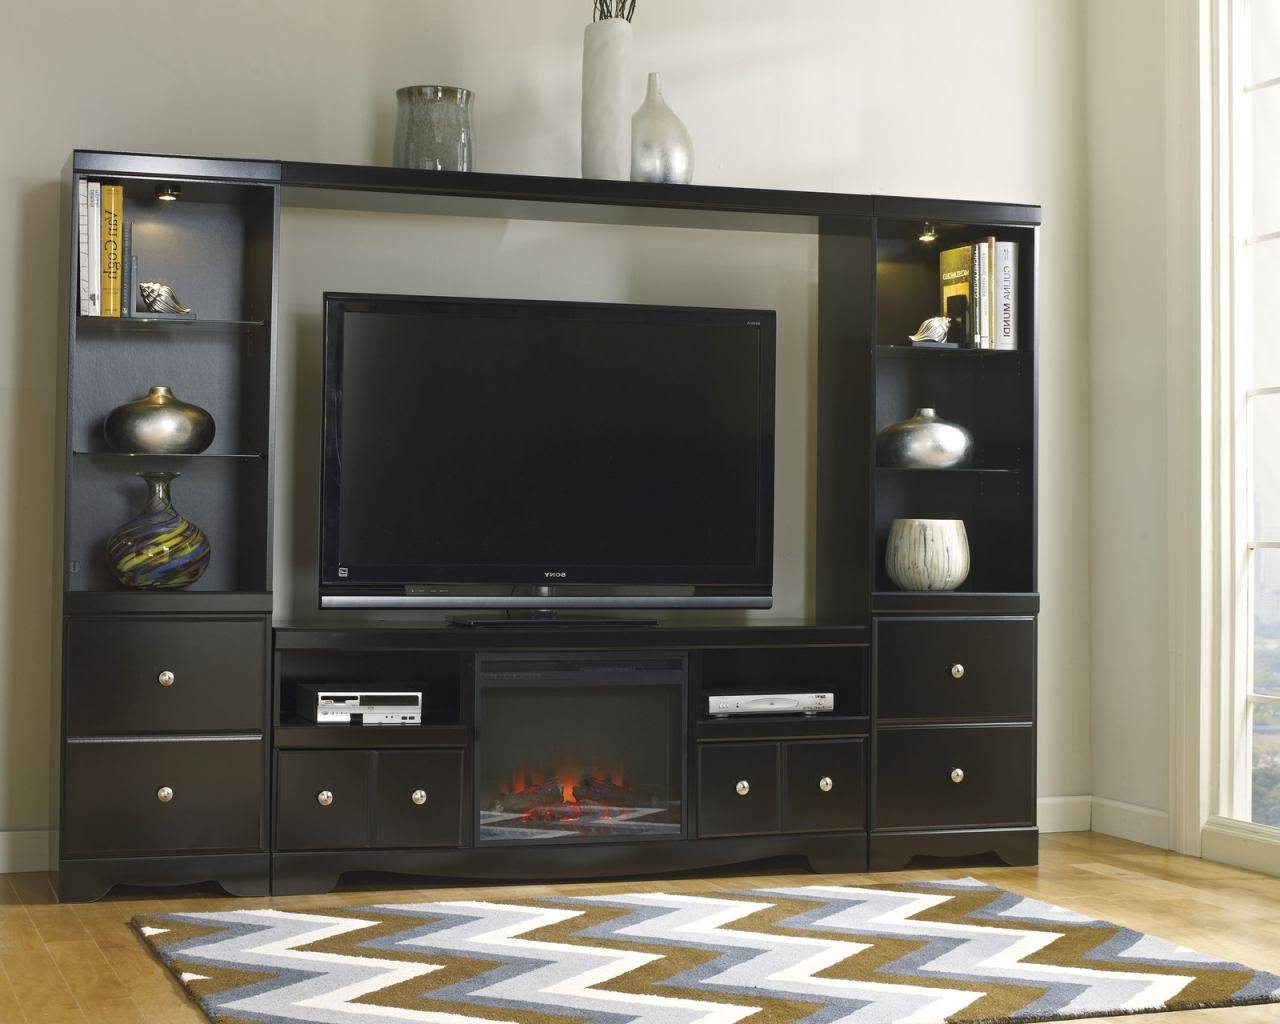 Large Entertainment Unit With Tv Stand W/ Fireplace Insert, Bridge for Tv Entertainment Unit (Image 2 of 15)